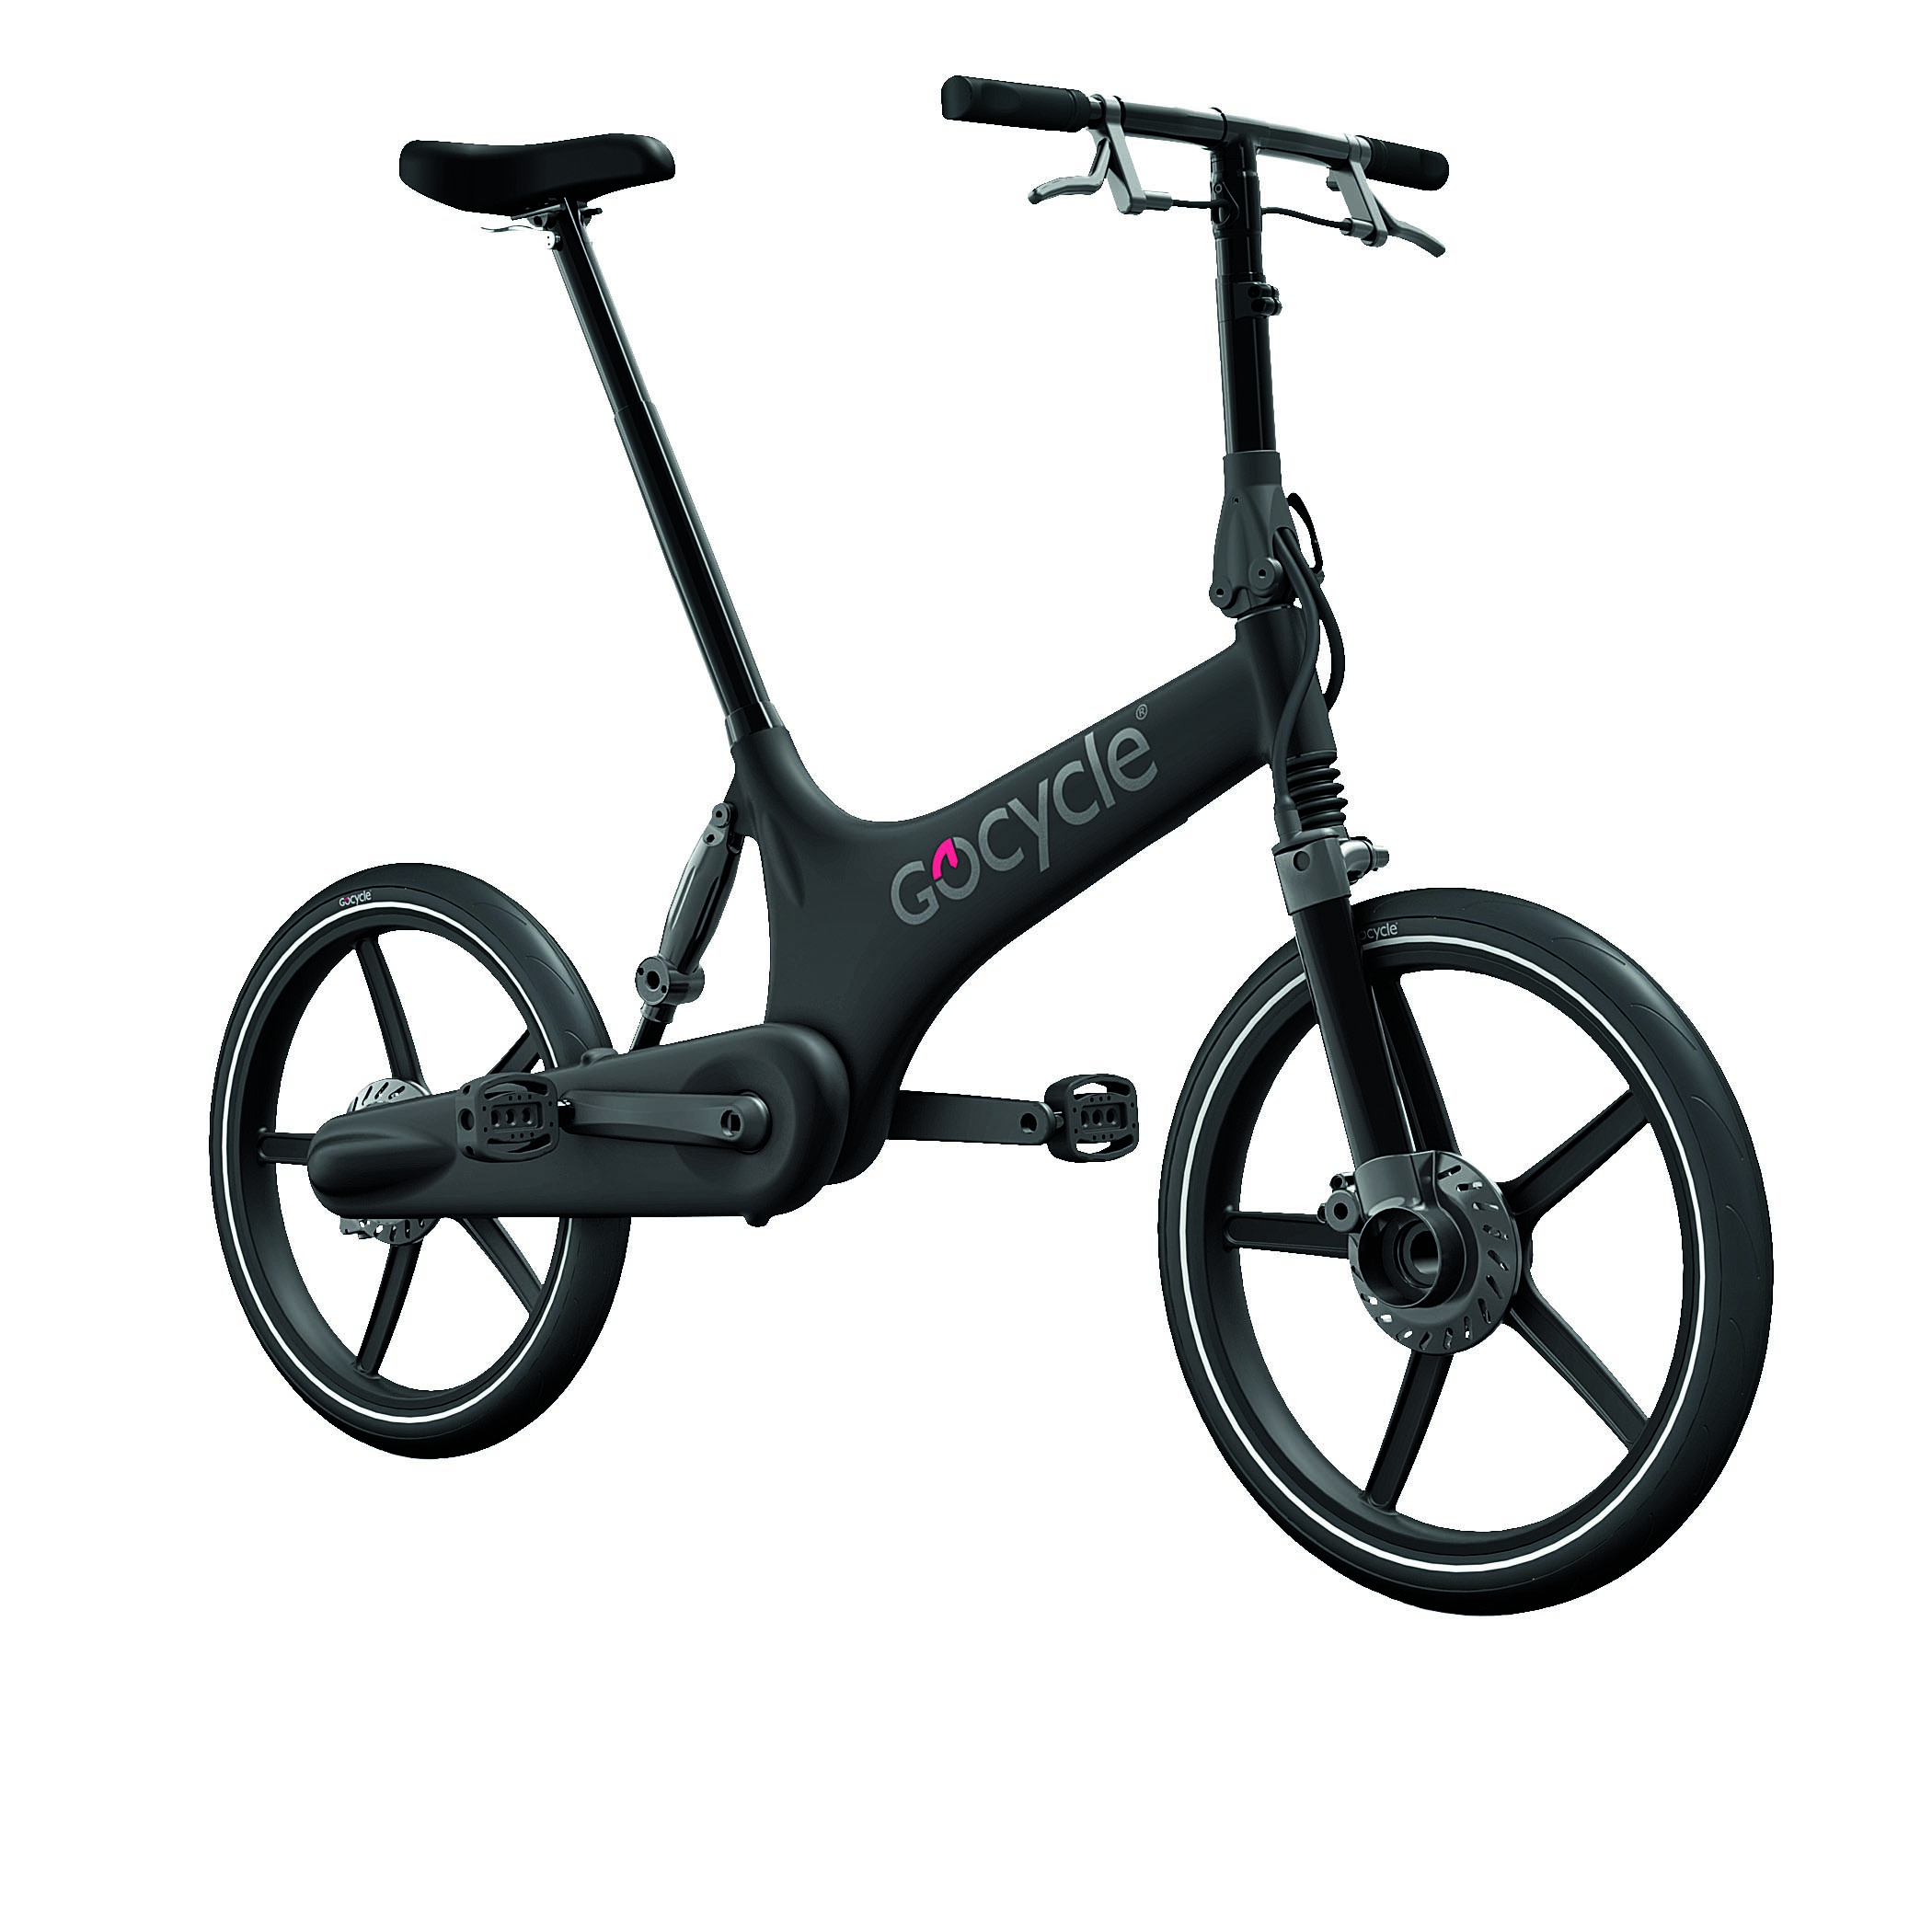 Buy Candy: Gocycle electric two-wheeler